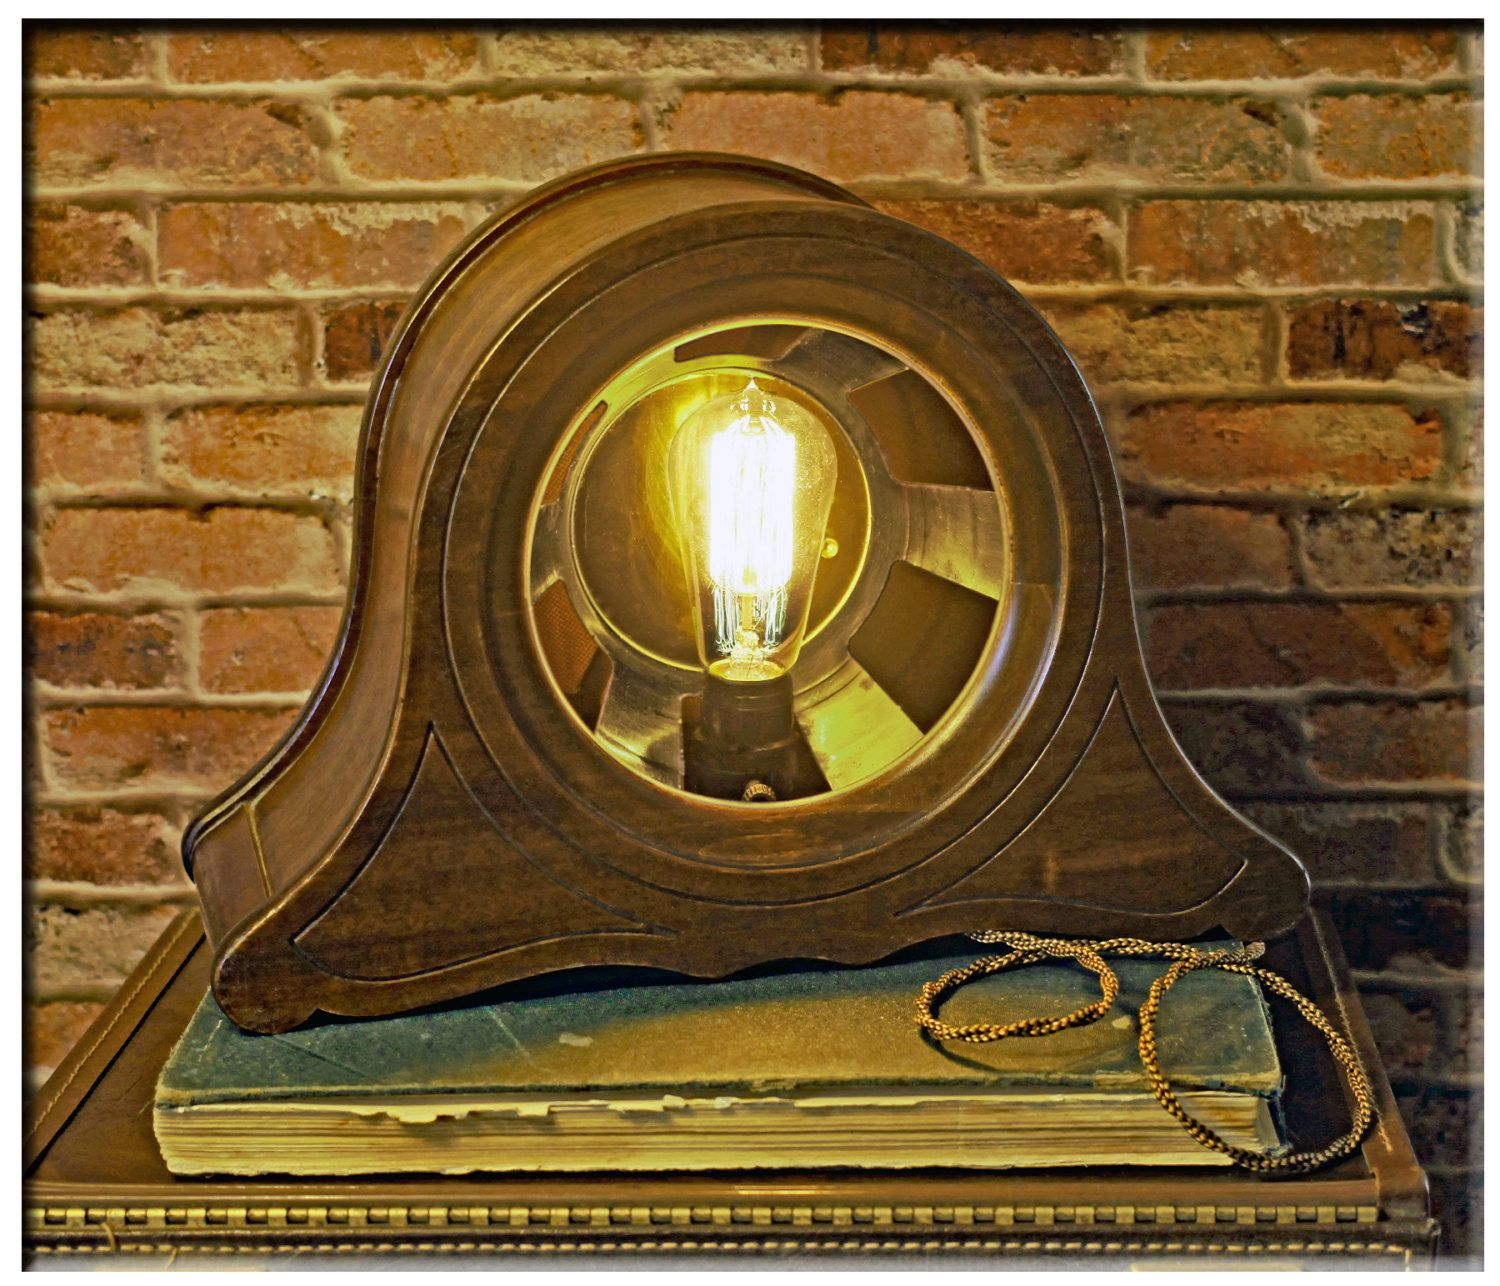 Upcycled Vintage Magnavox Gothic Wood Cathedral Speaker Repurposed into a Table…